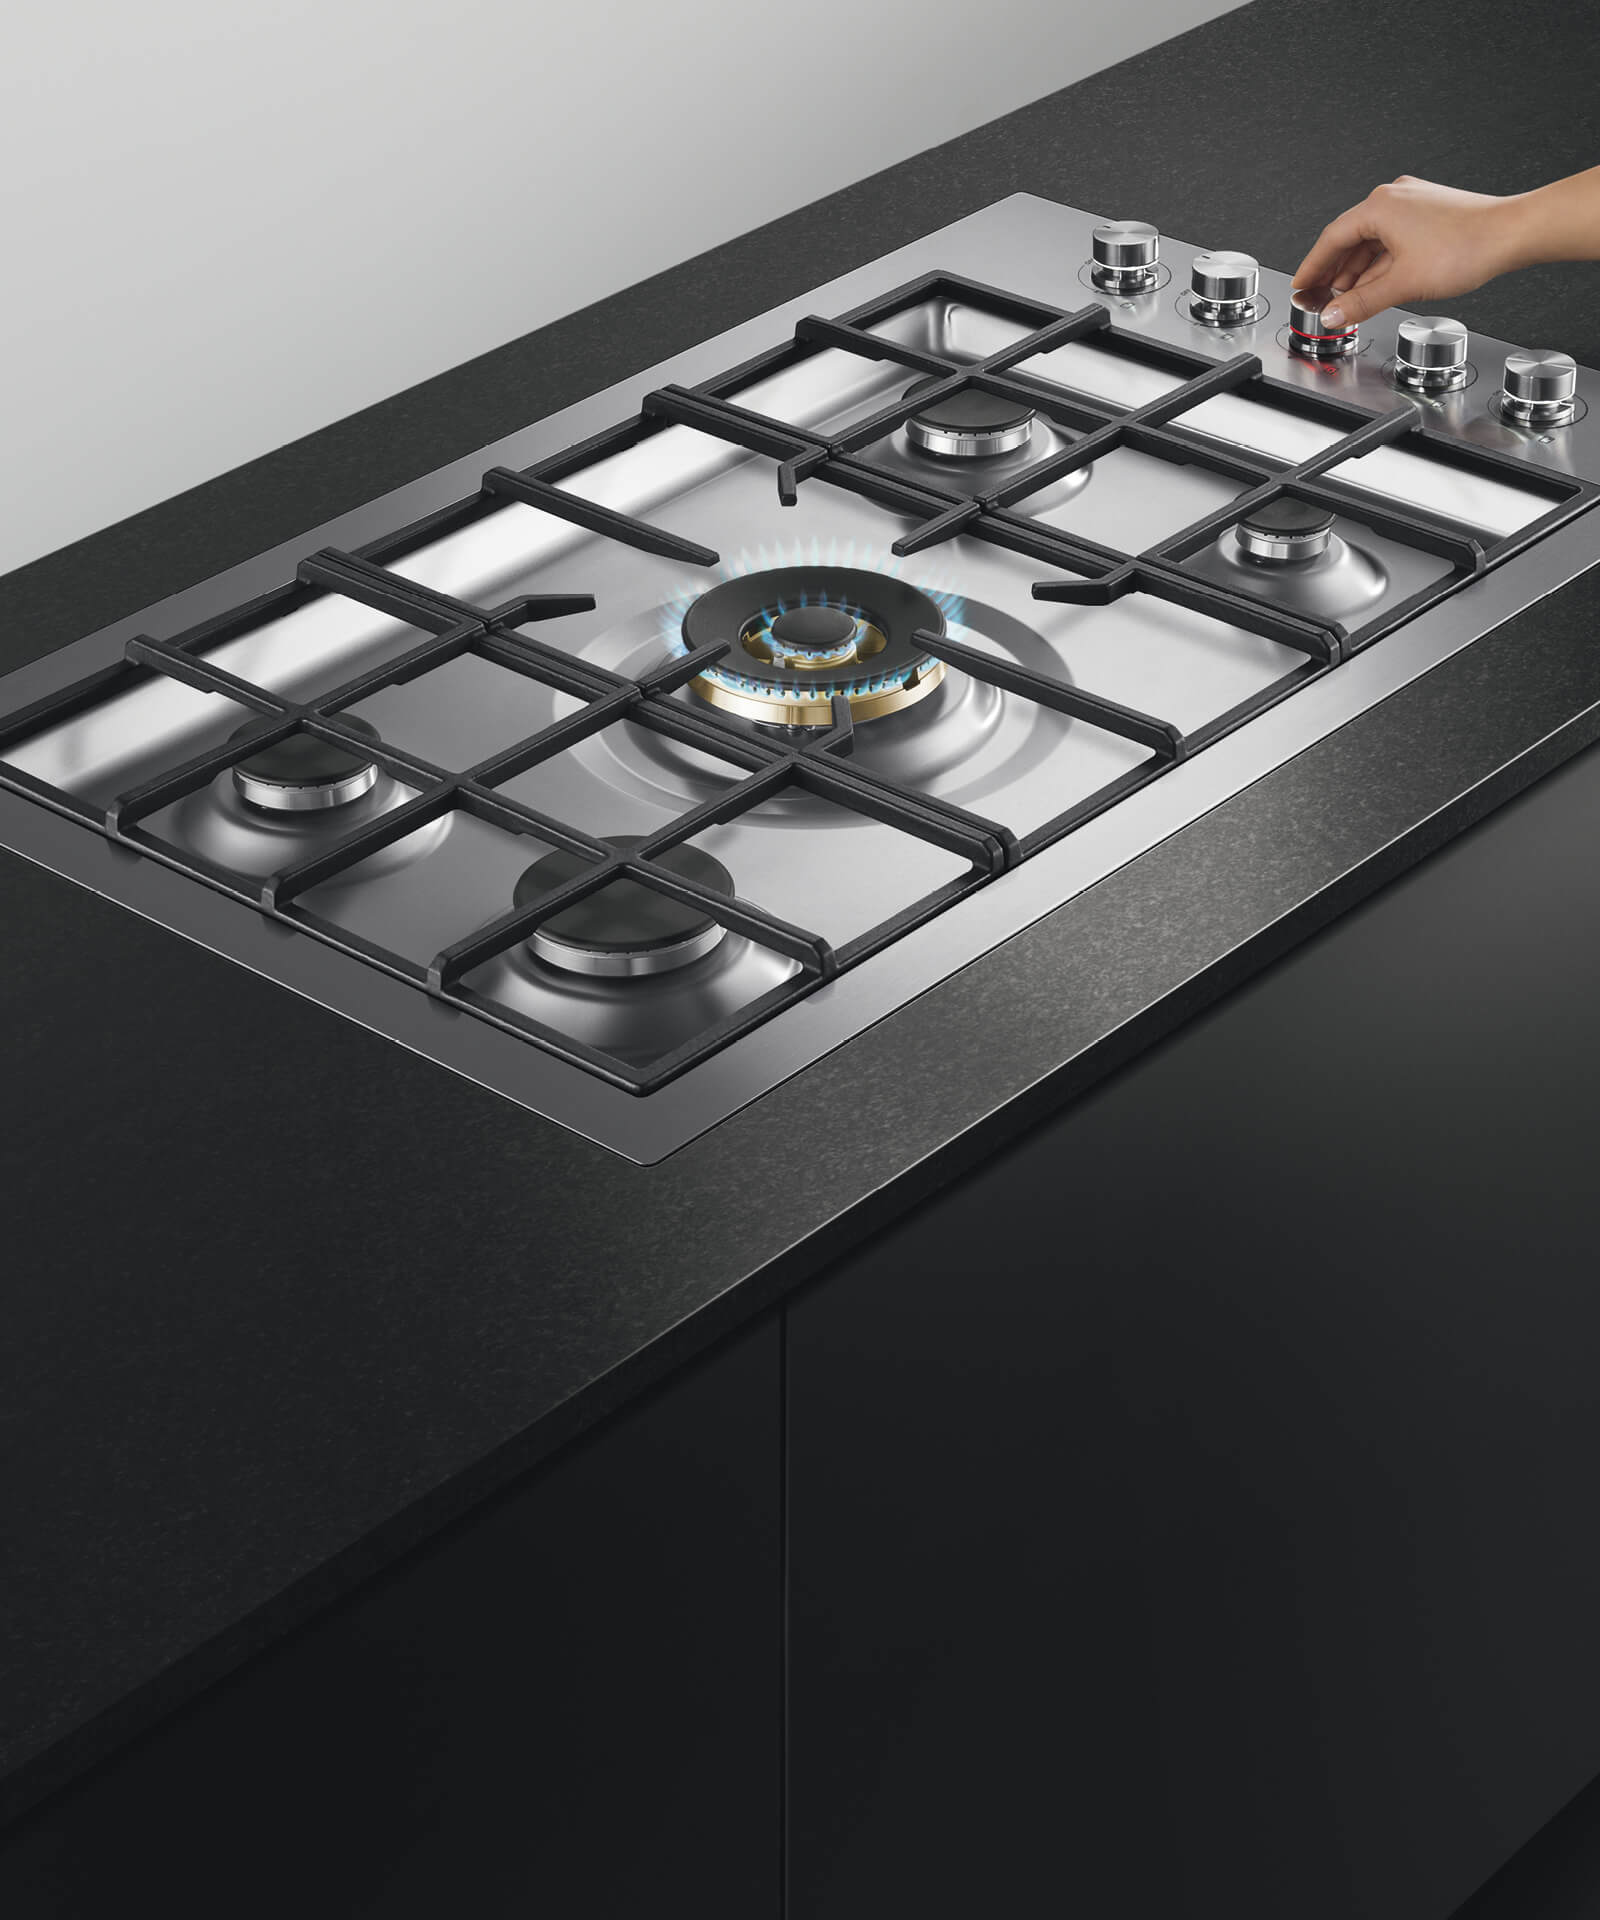 ... 5 Burner Gas Cooktop   80911. PrevNext